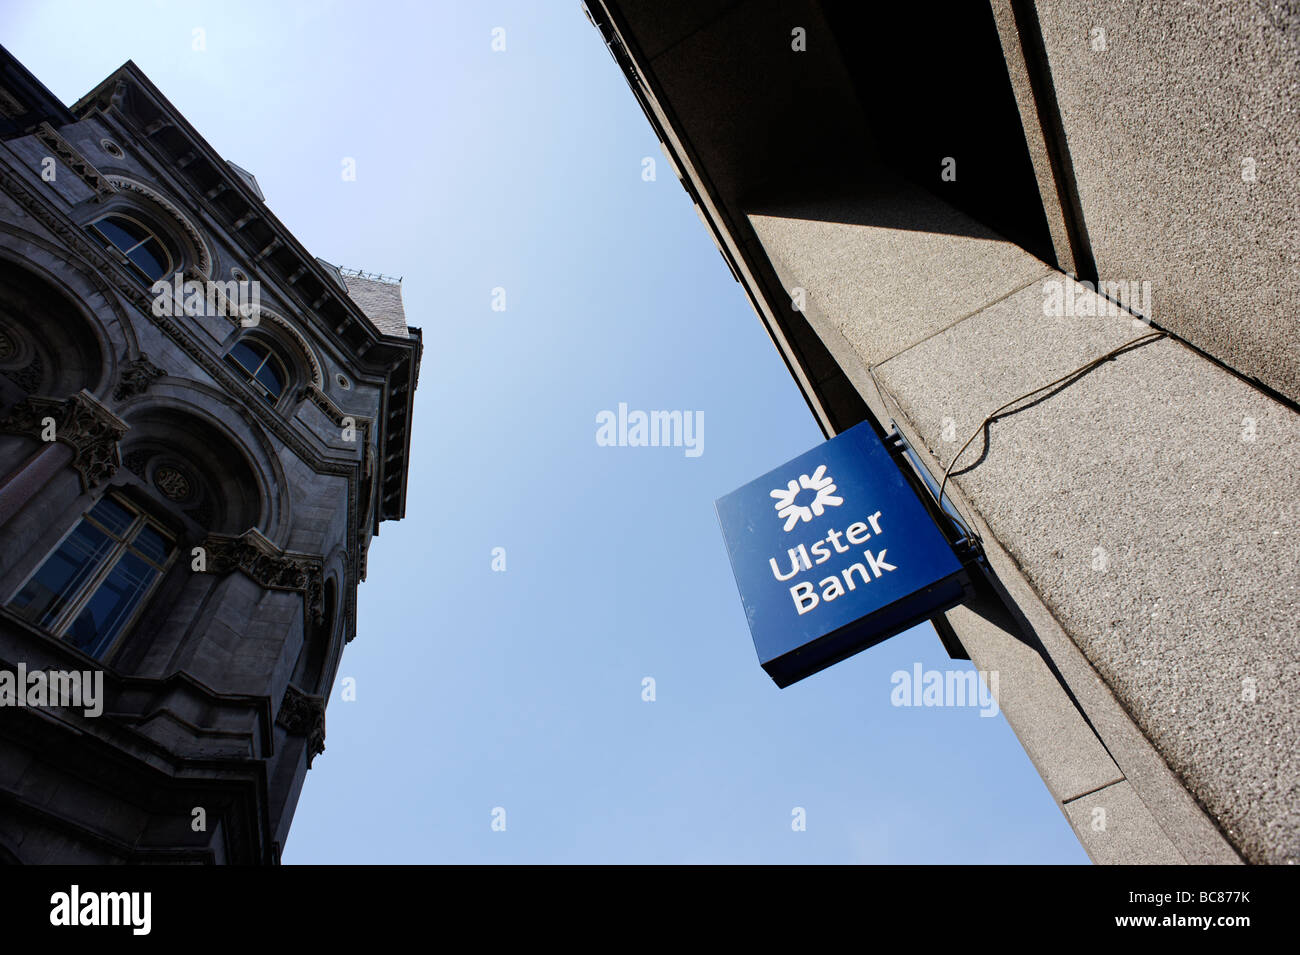 Ulster bank sign in central Dublin Republic of Ireland - Stock Image